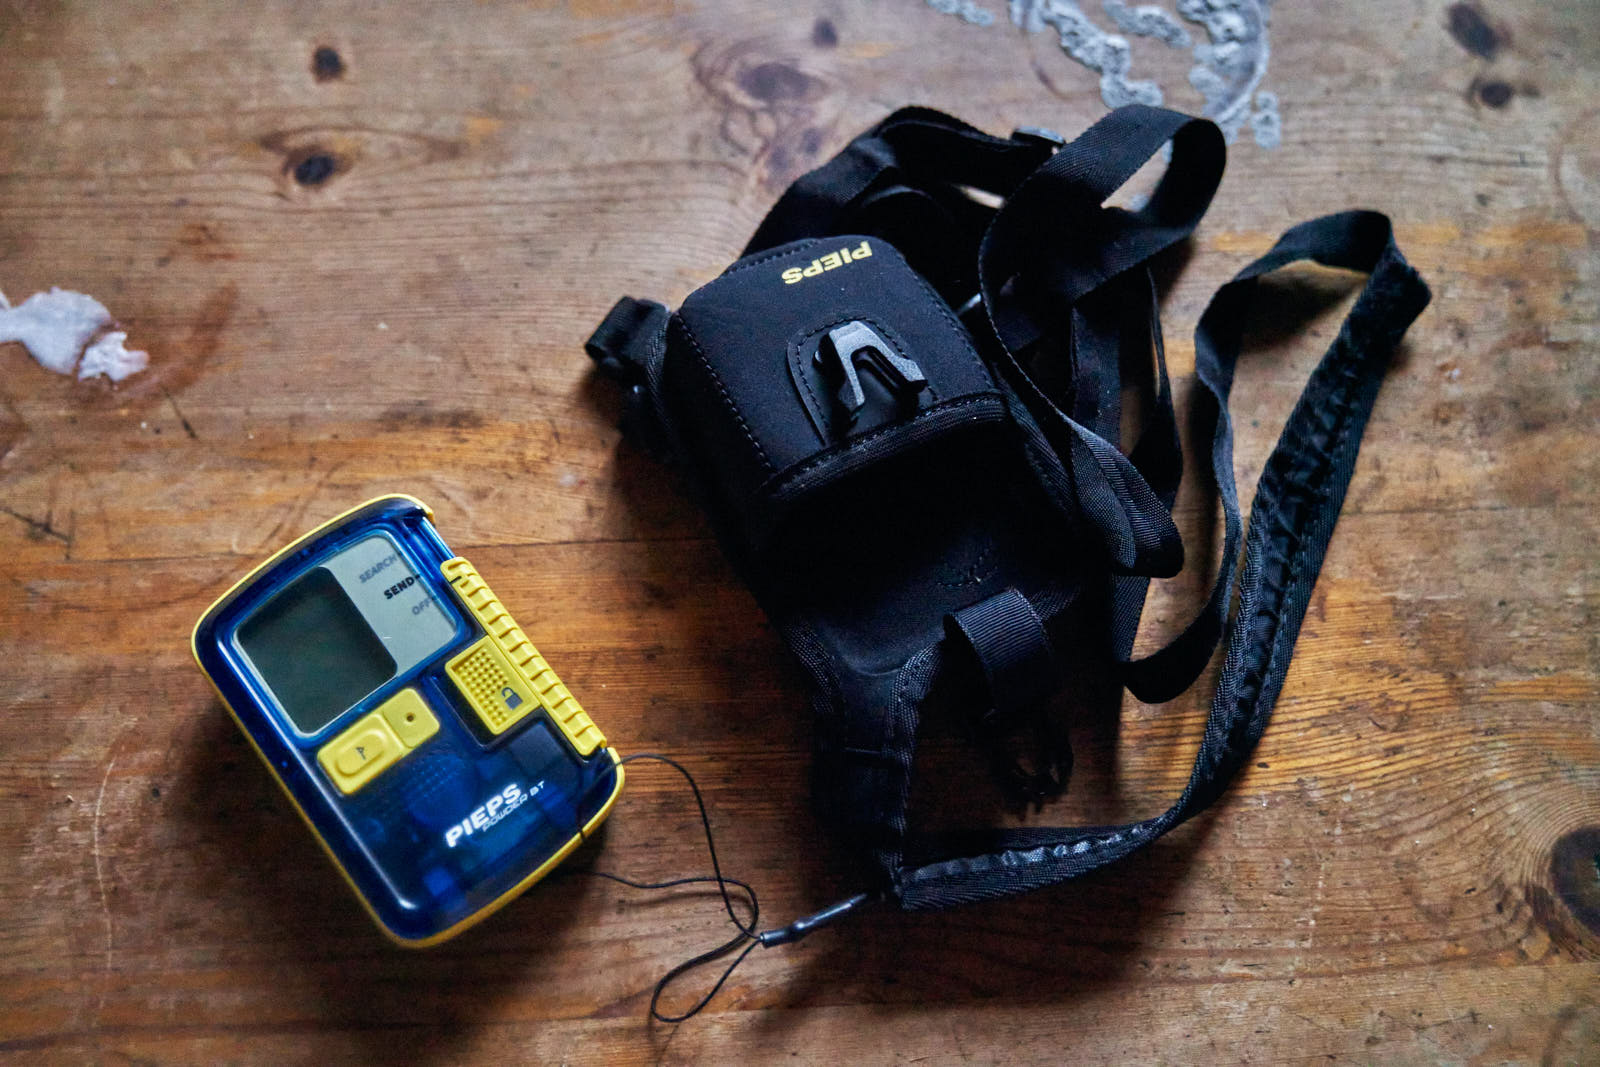 How to wear an avalanche transceiver?